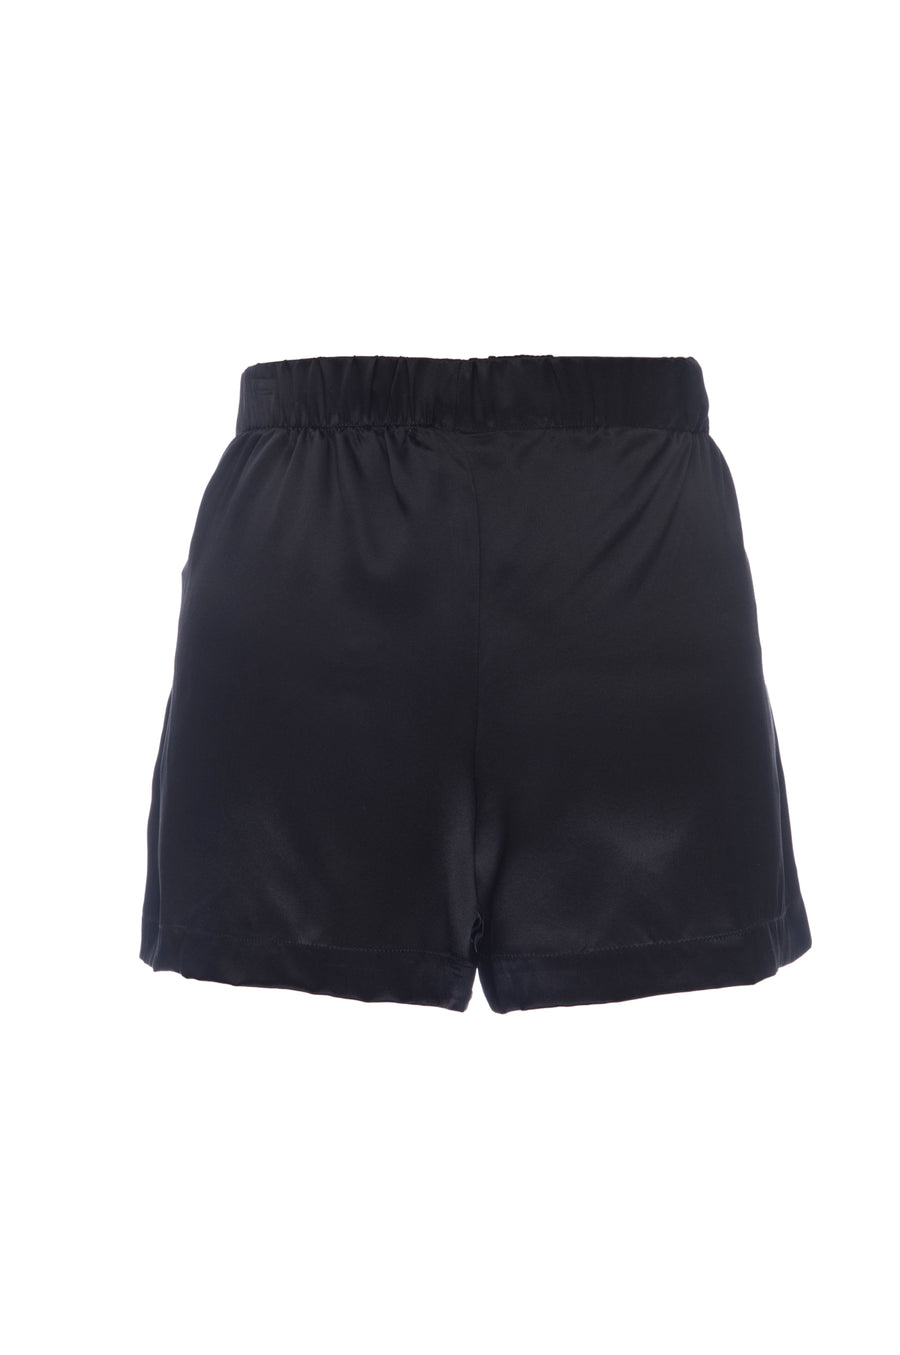 Silk Charmeuse Shorts: Black